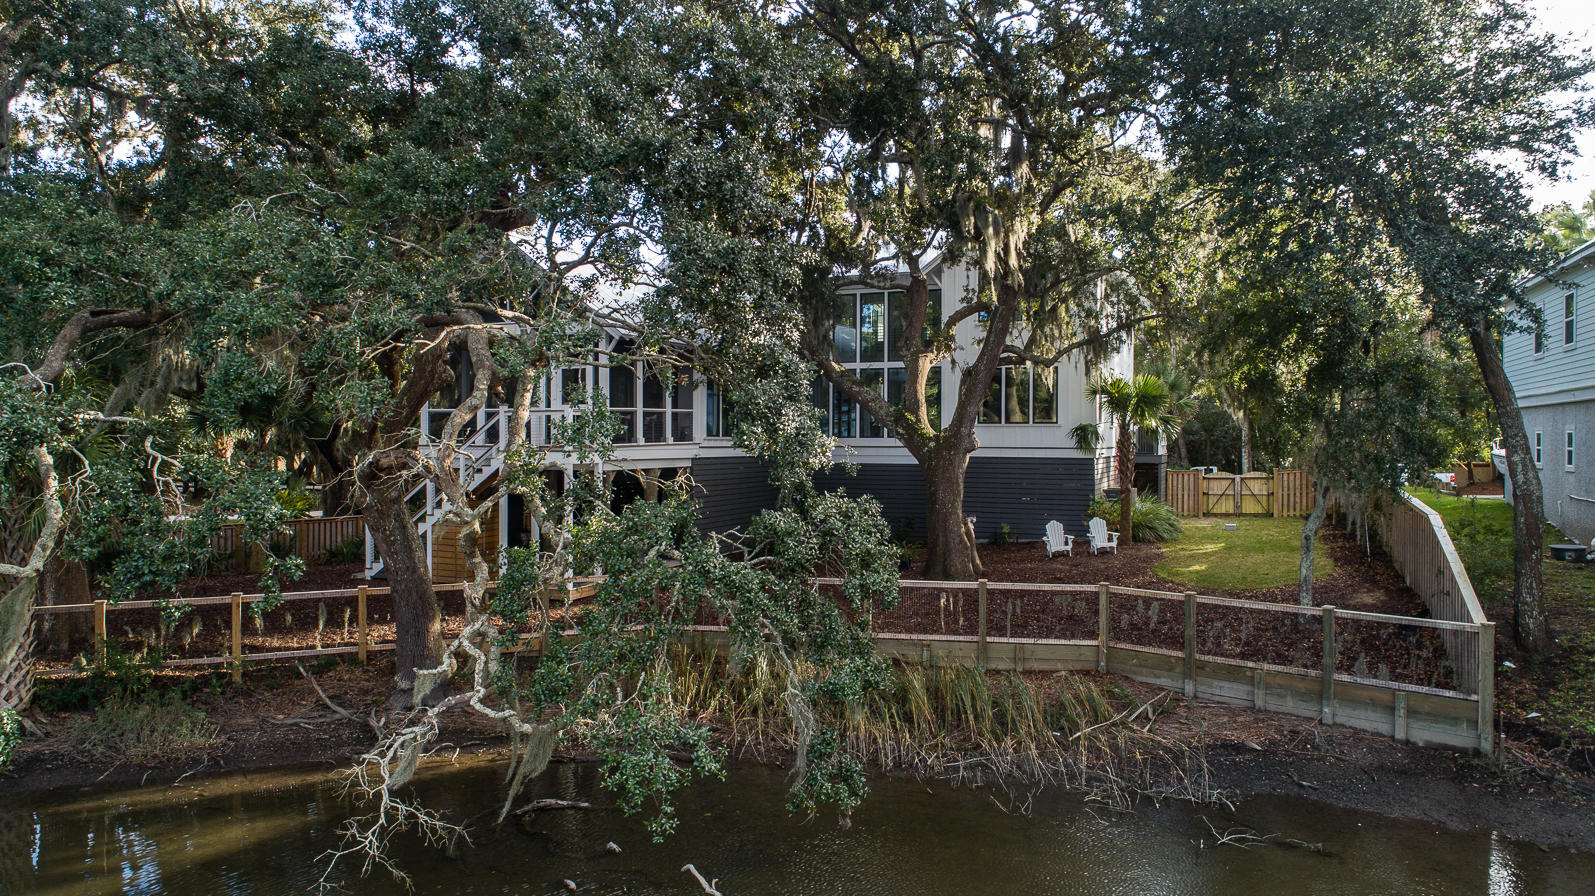 Remleys Point Homes For Sale - 100 5th, Mount Pleasant, SC - 109